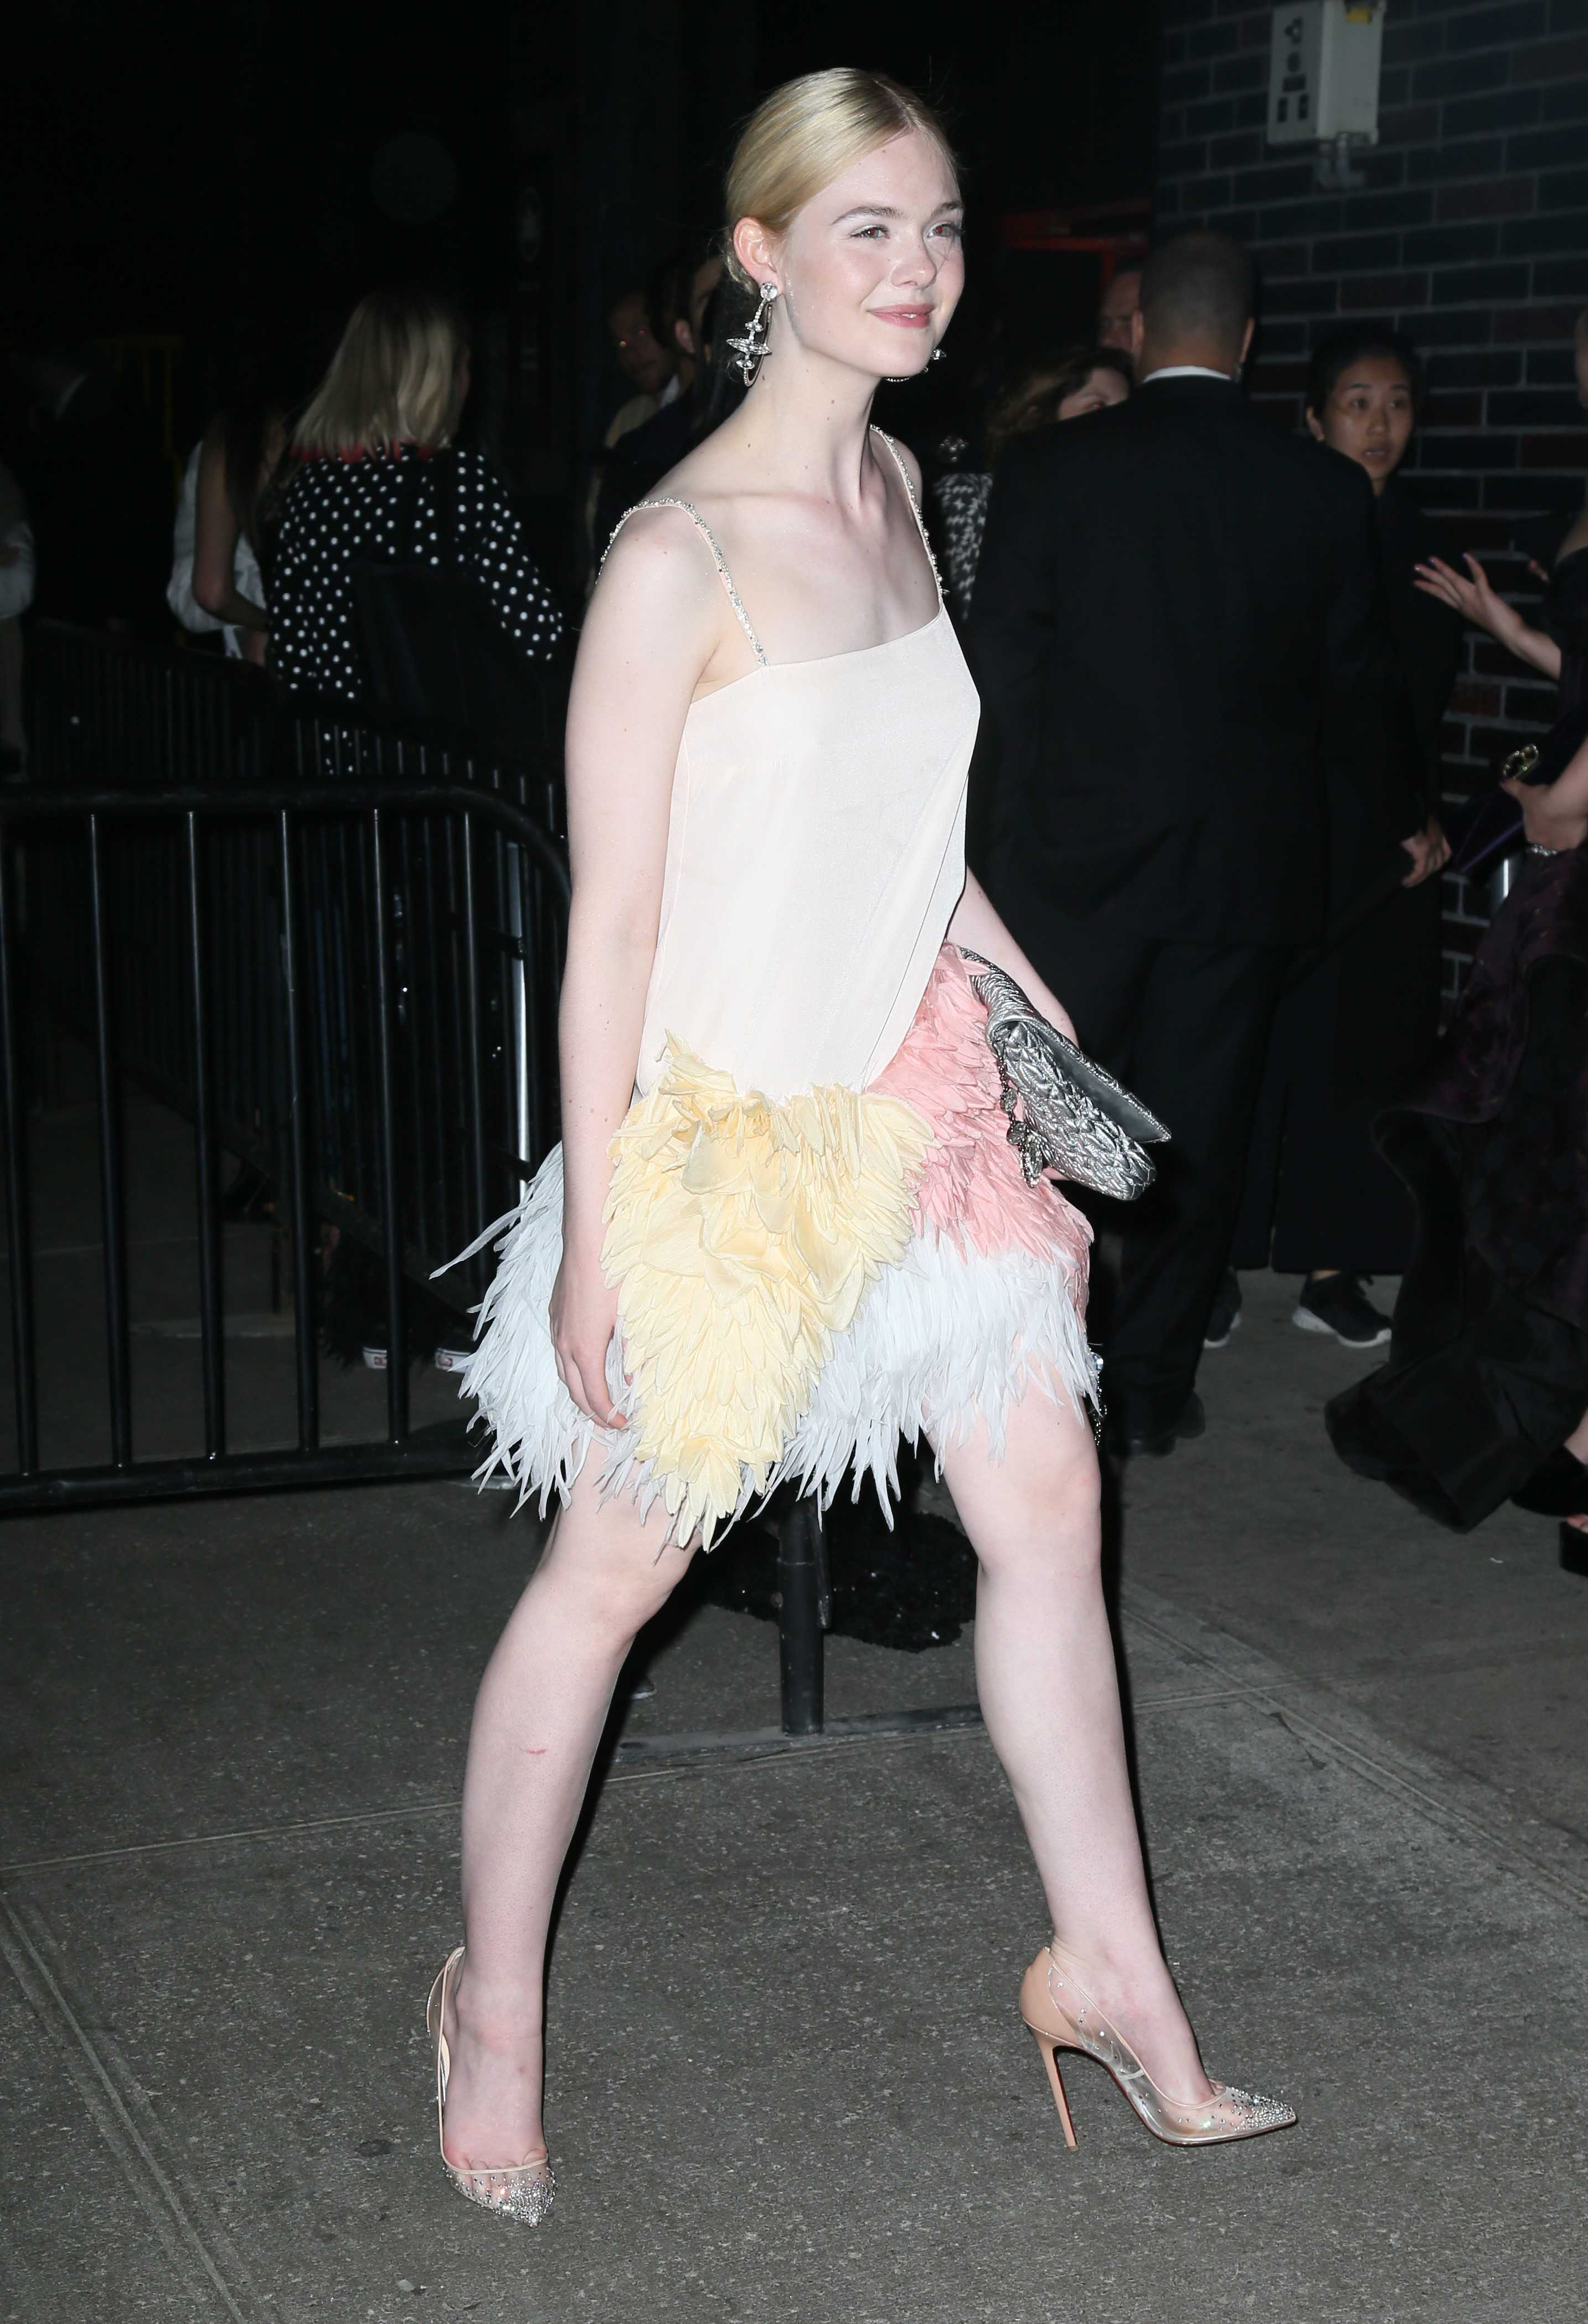 Cute Light Blue Wallpapers Elle Fanning Hottest Pictures In Bikini Amp Hd Photoshoots